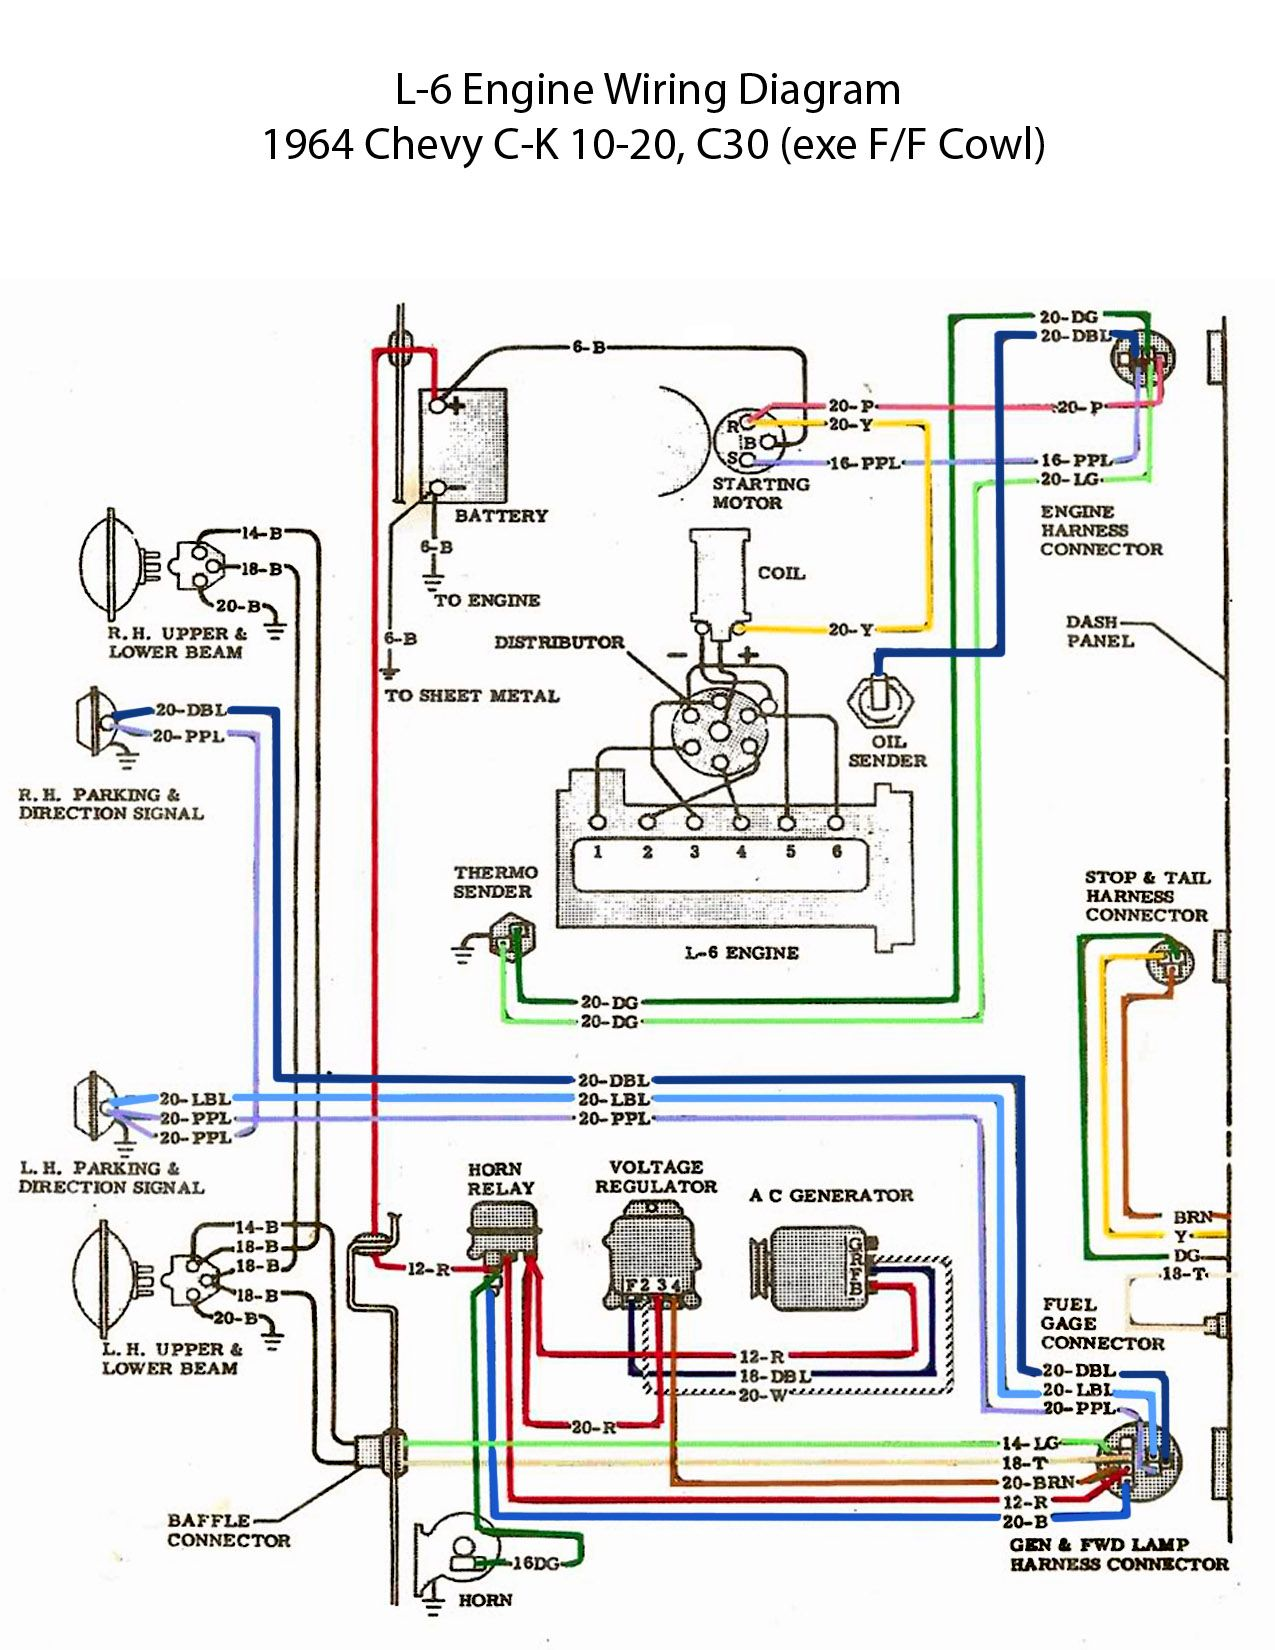 1975 Dodge D100 Wiring Diagram Diy Enthusiasts Diagrams Electric L 6 Engine 60s Chevy C10 Rh Pinterest Com 1976 Specs 1973